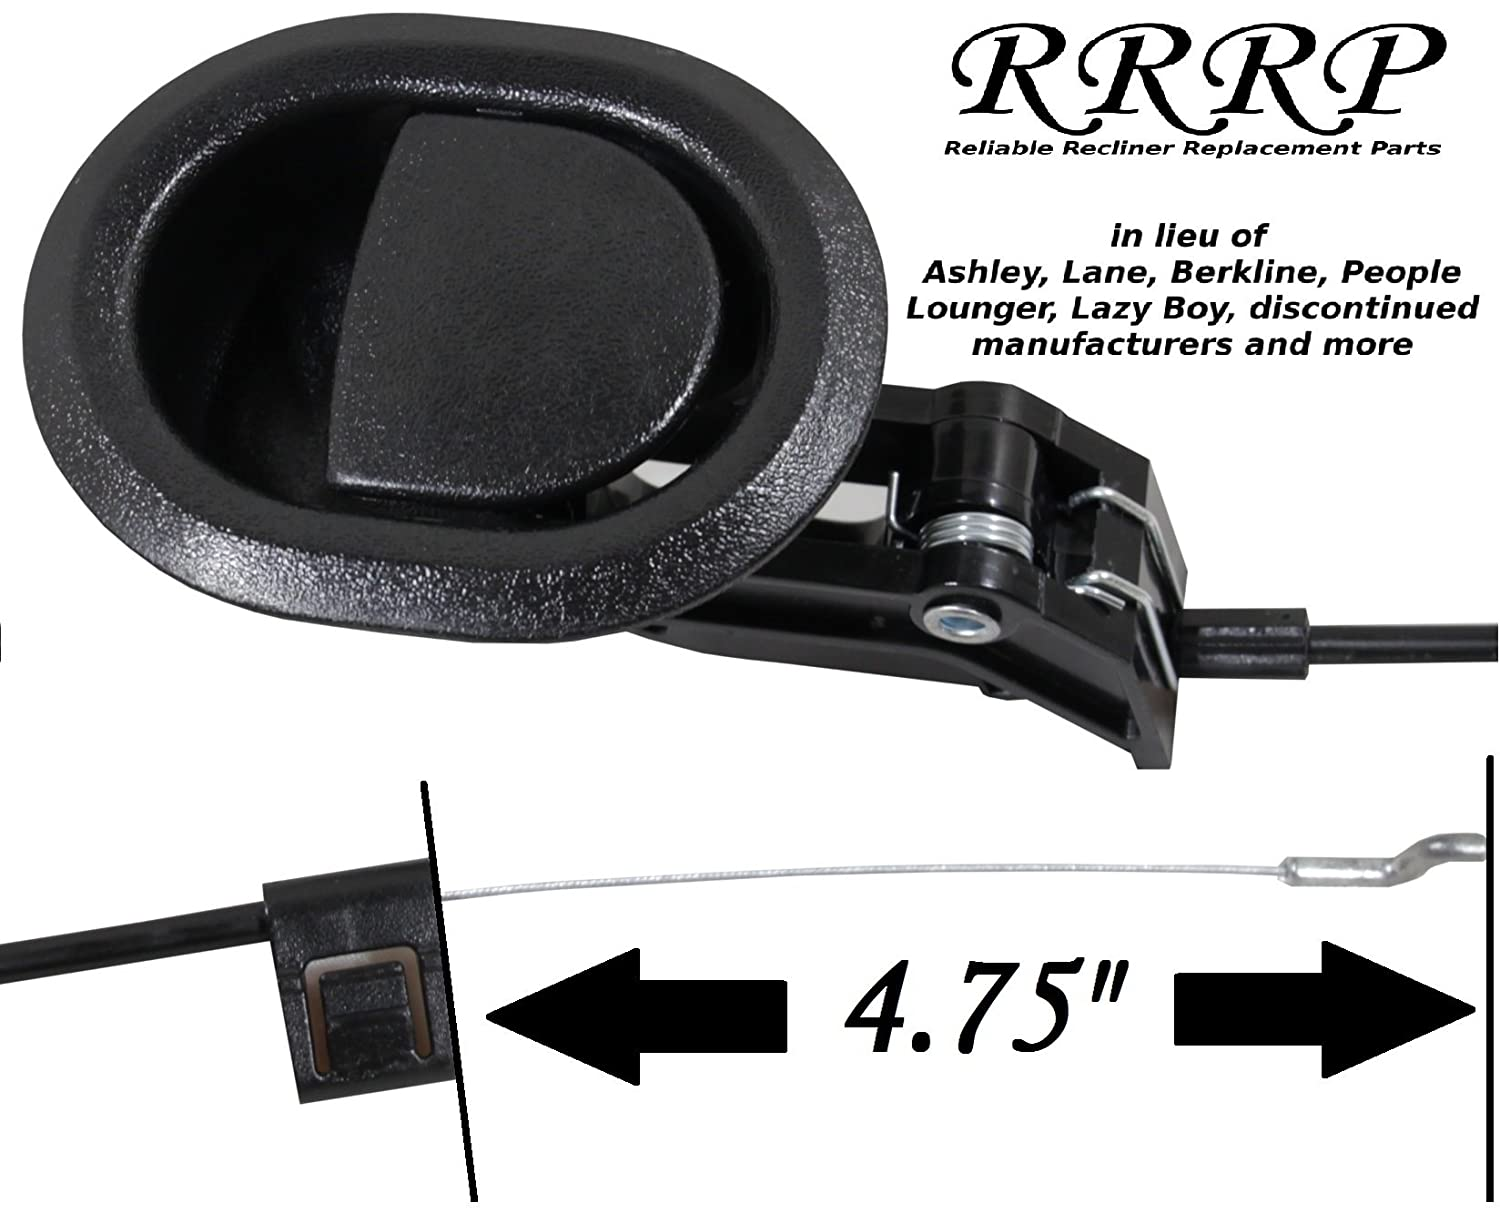 Amazon.com Reliable Recliner Replacement Parts - Complete Universal Small Oval Black Plastic Pull Recliner Handle 3  by 3.5  with Cable and S / Z Hook ...  sc 1 st  Amazon.com & Amazon.com: Reliable Recliner Replacement Parts - Complete ... islam-shia.org